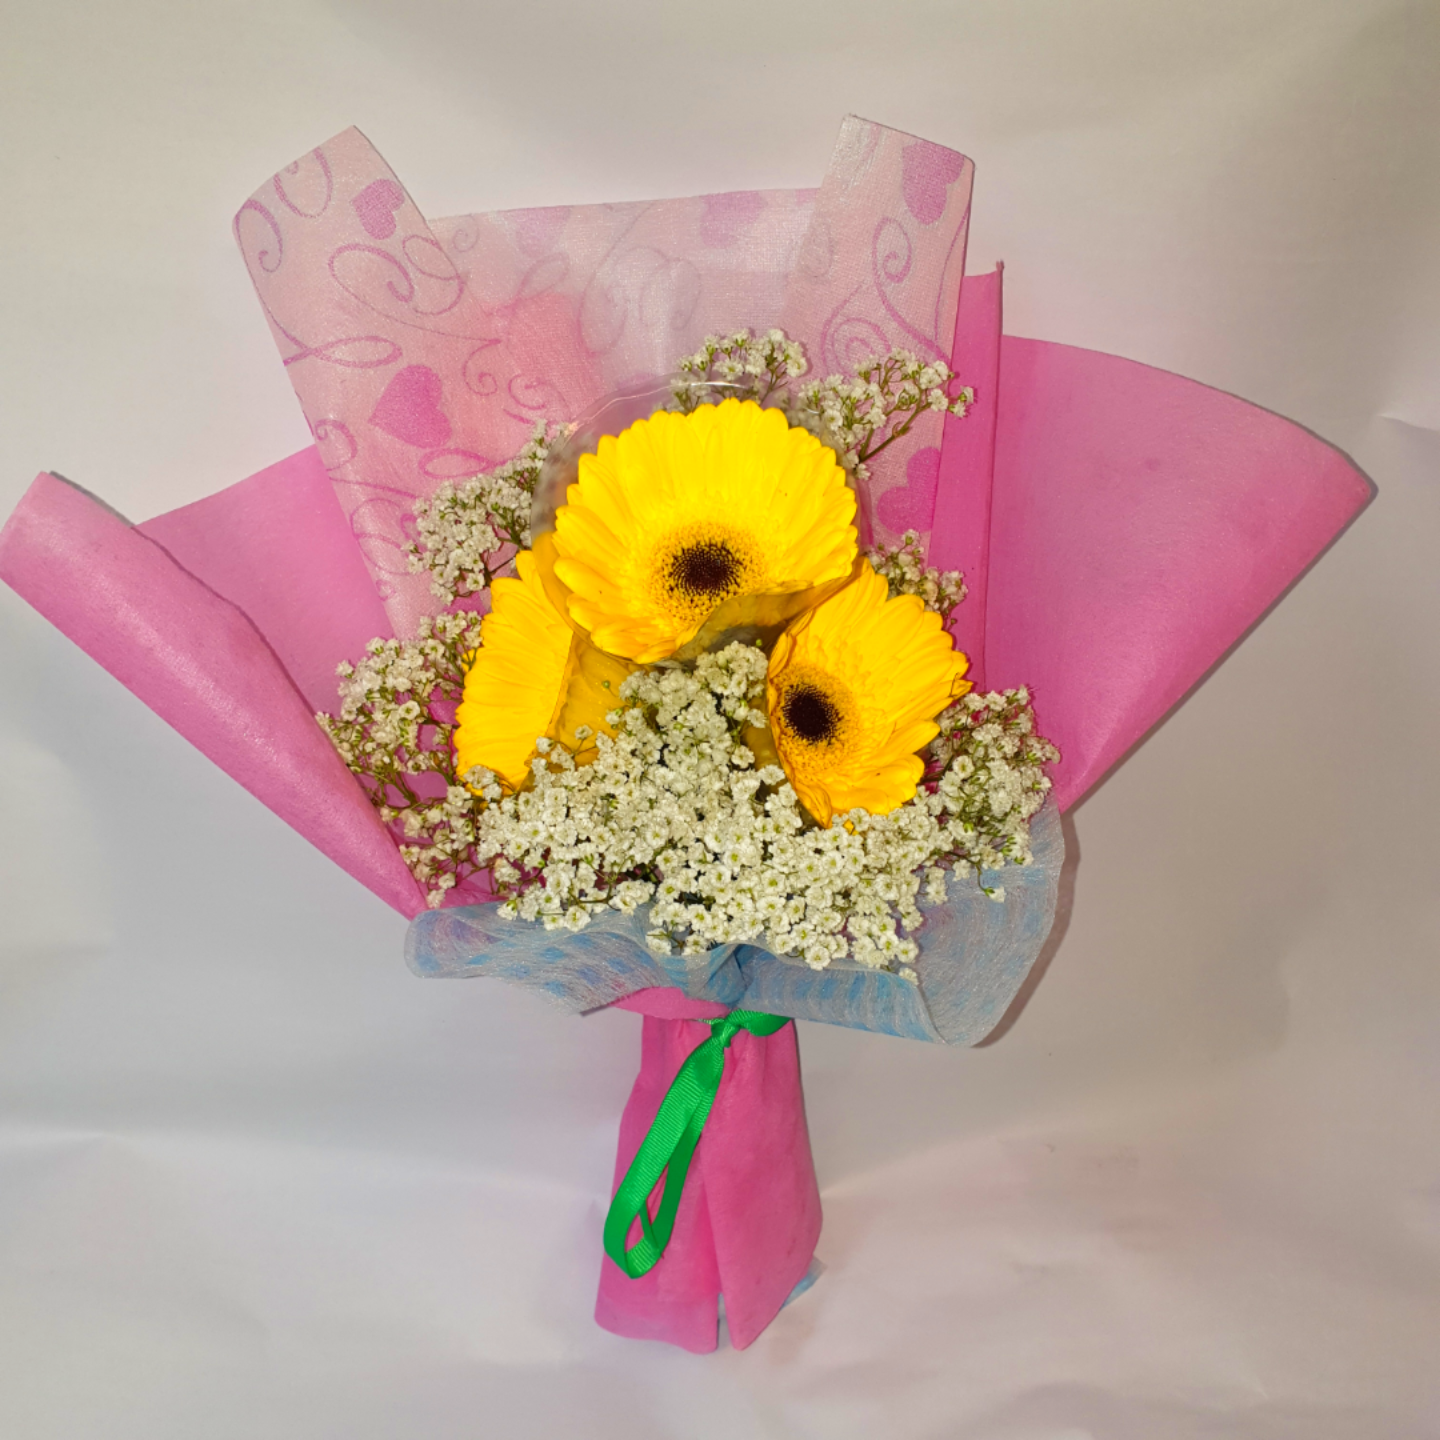 (NEW) Vflowers ( 3 Shocking Pink or Yellow Gerbera ) With Baby's Breath